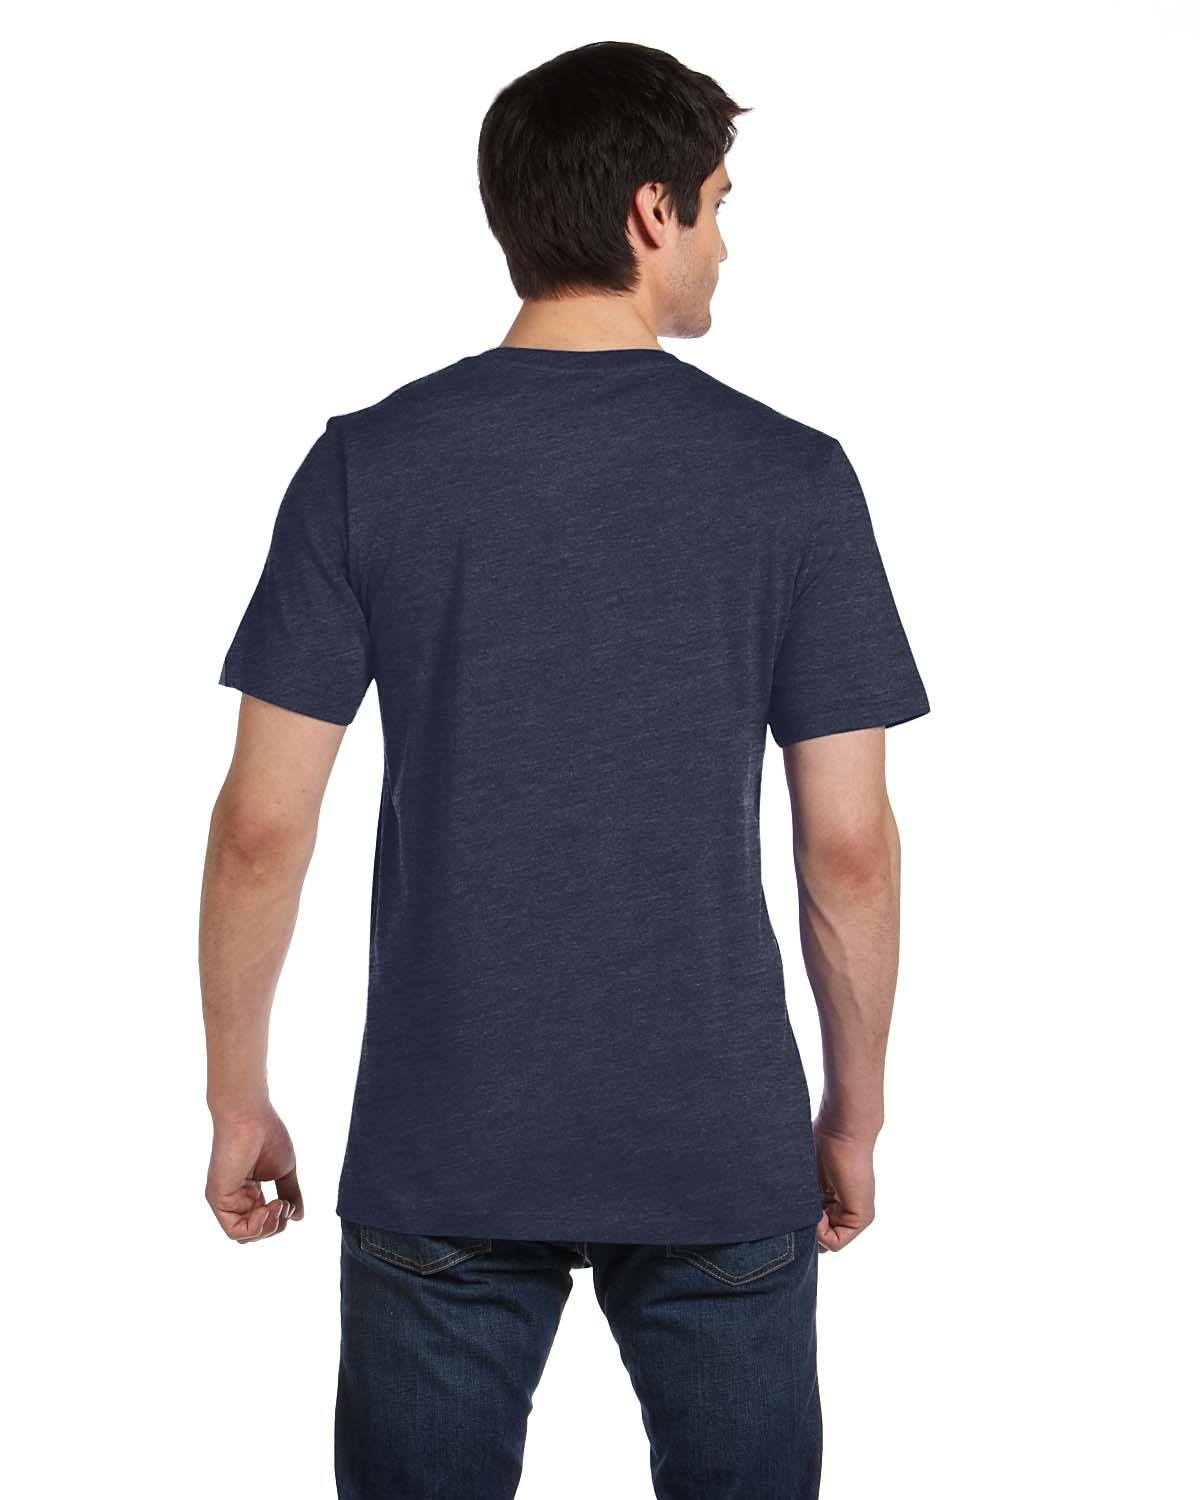 3005 Bella + Canvas HEATHER NAVY